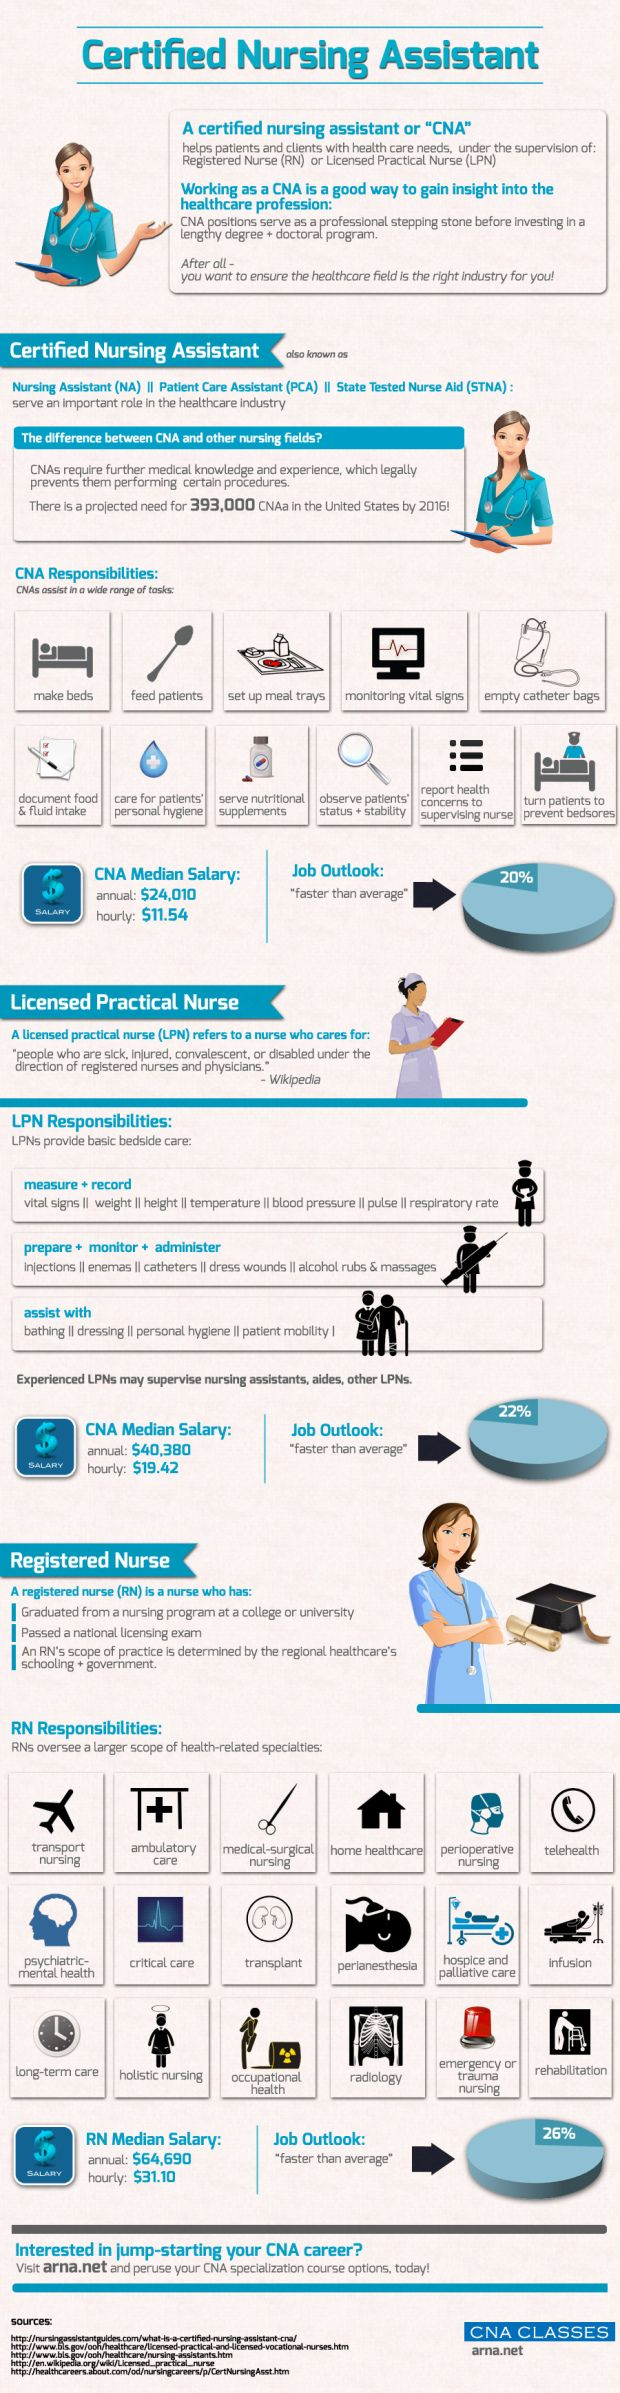 A great cna certified nursing assistant educational infographic a great cna certified nursing assistant educational infographic cnapursuit 1betcityfo Image collections